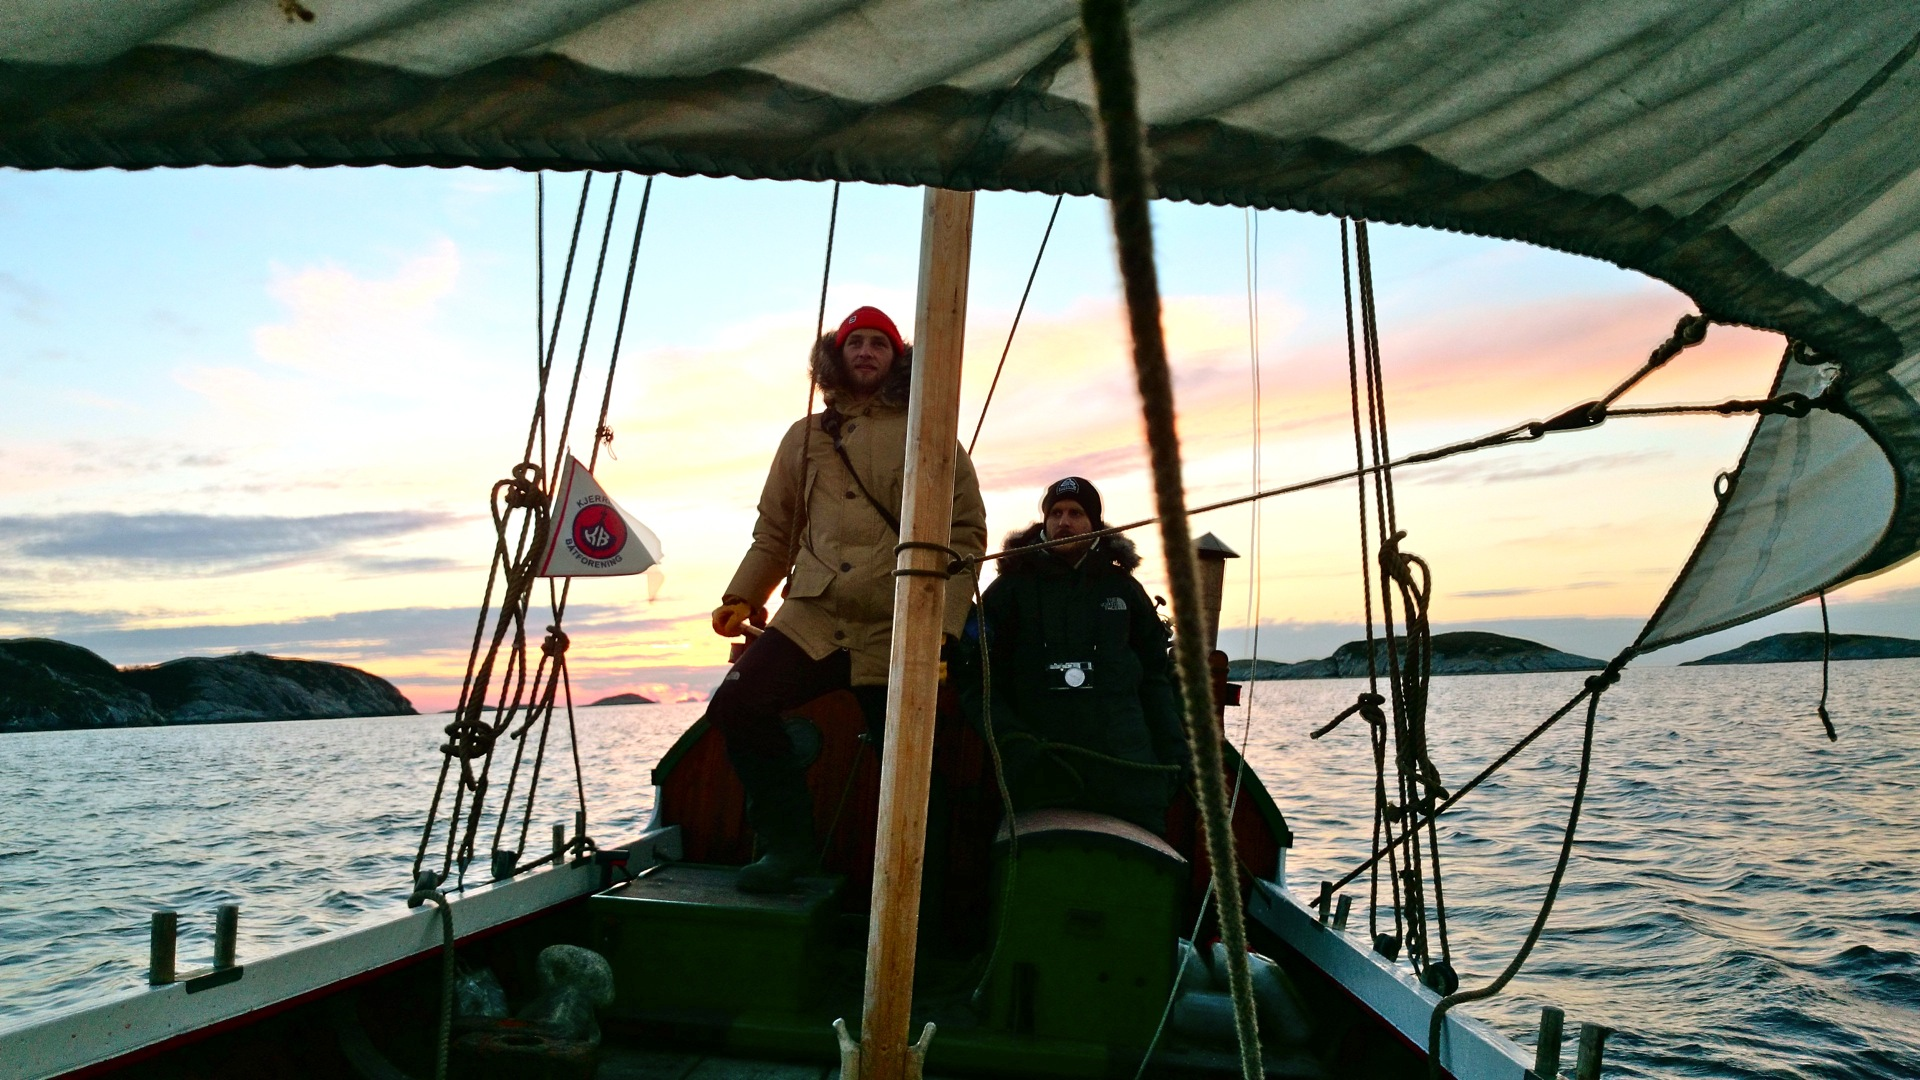 Helming a 17th century Nordlands boat off the northern Norwegian coast while on assignment for Islands Magazine in February 2014.